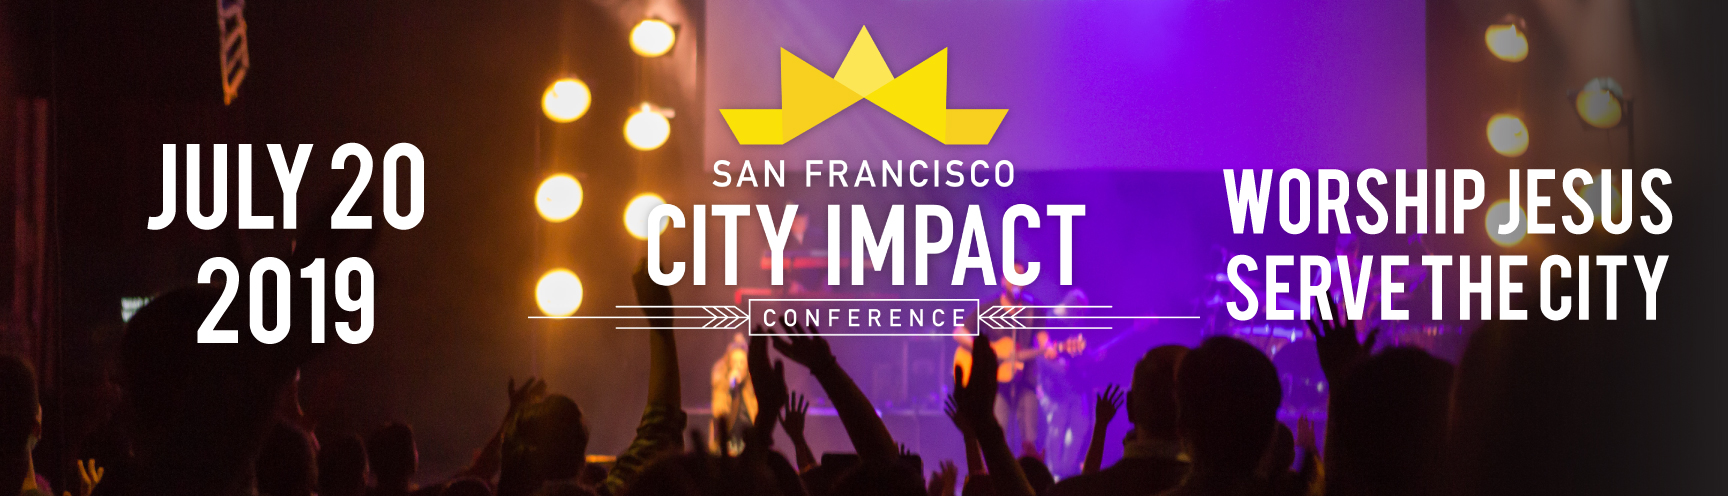 City Impact Conference 2019